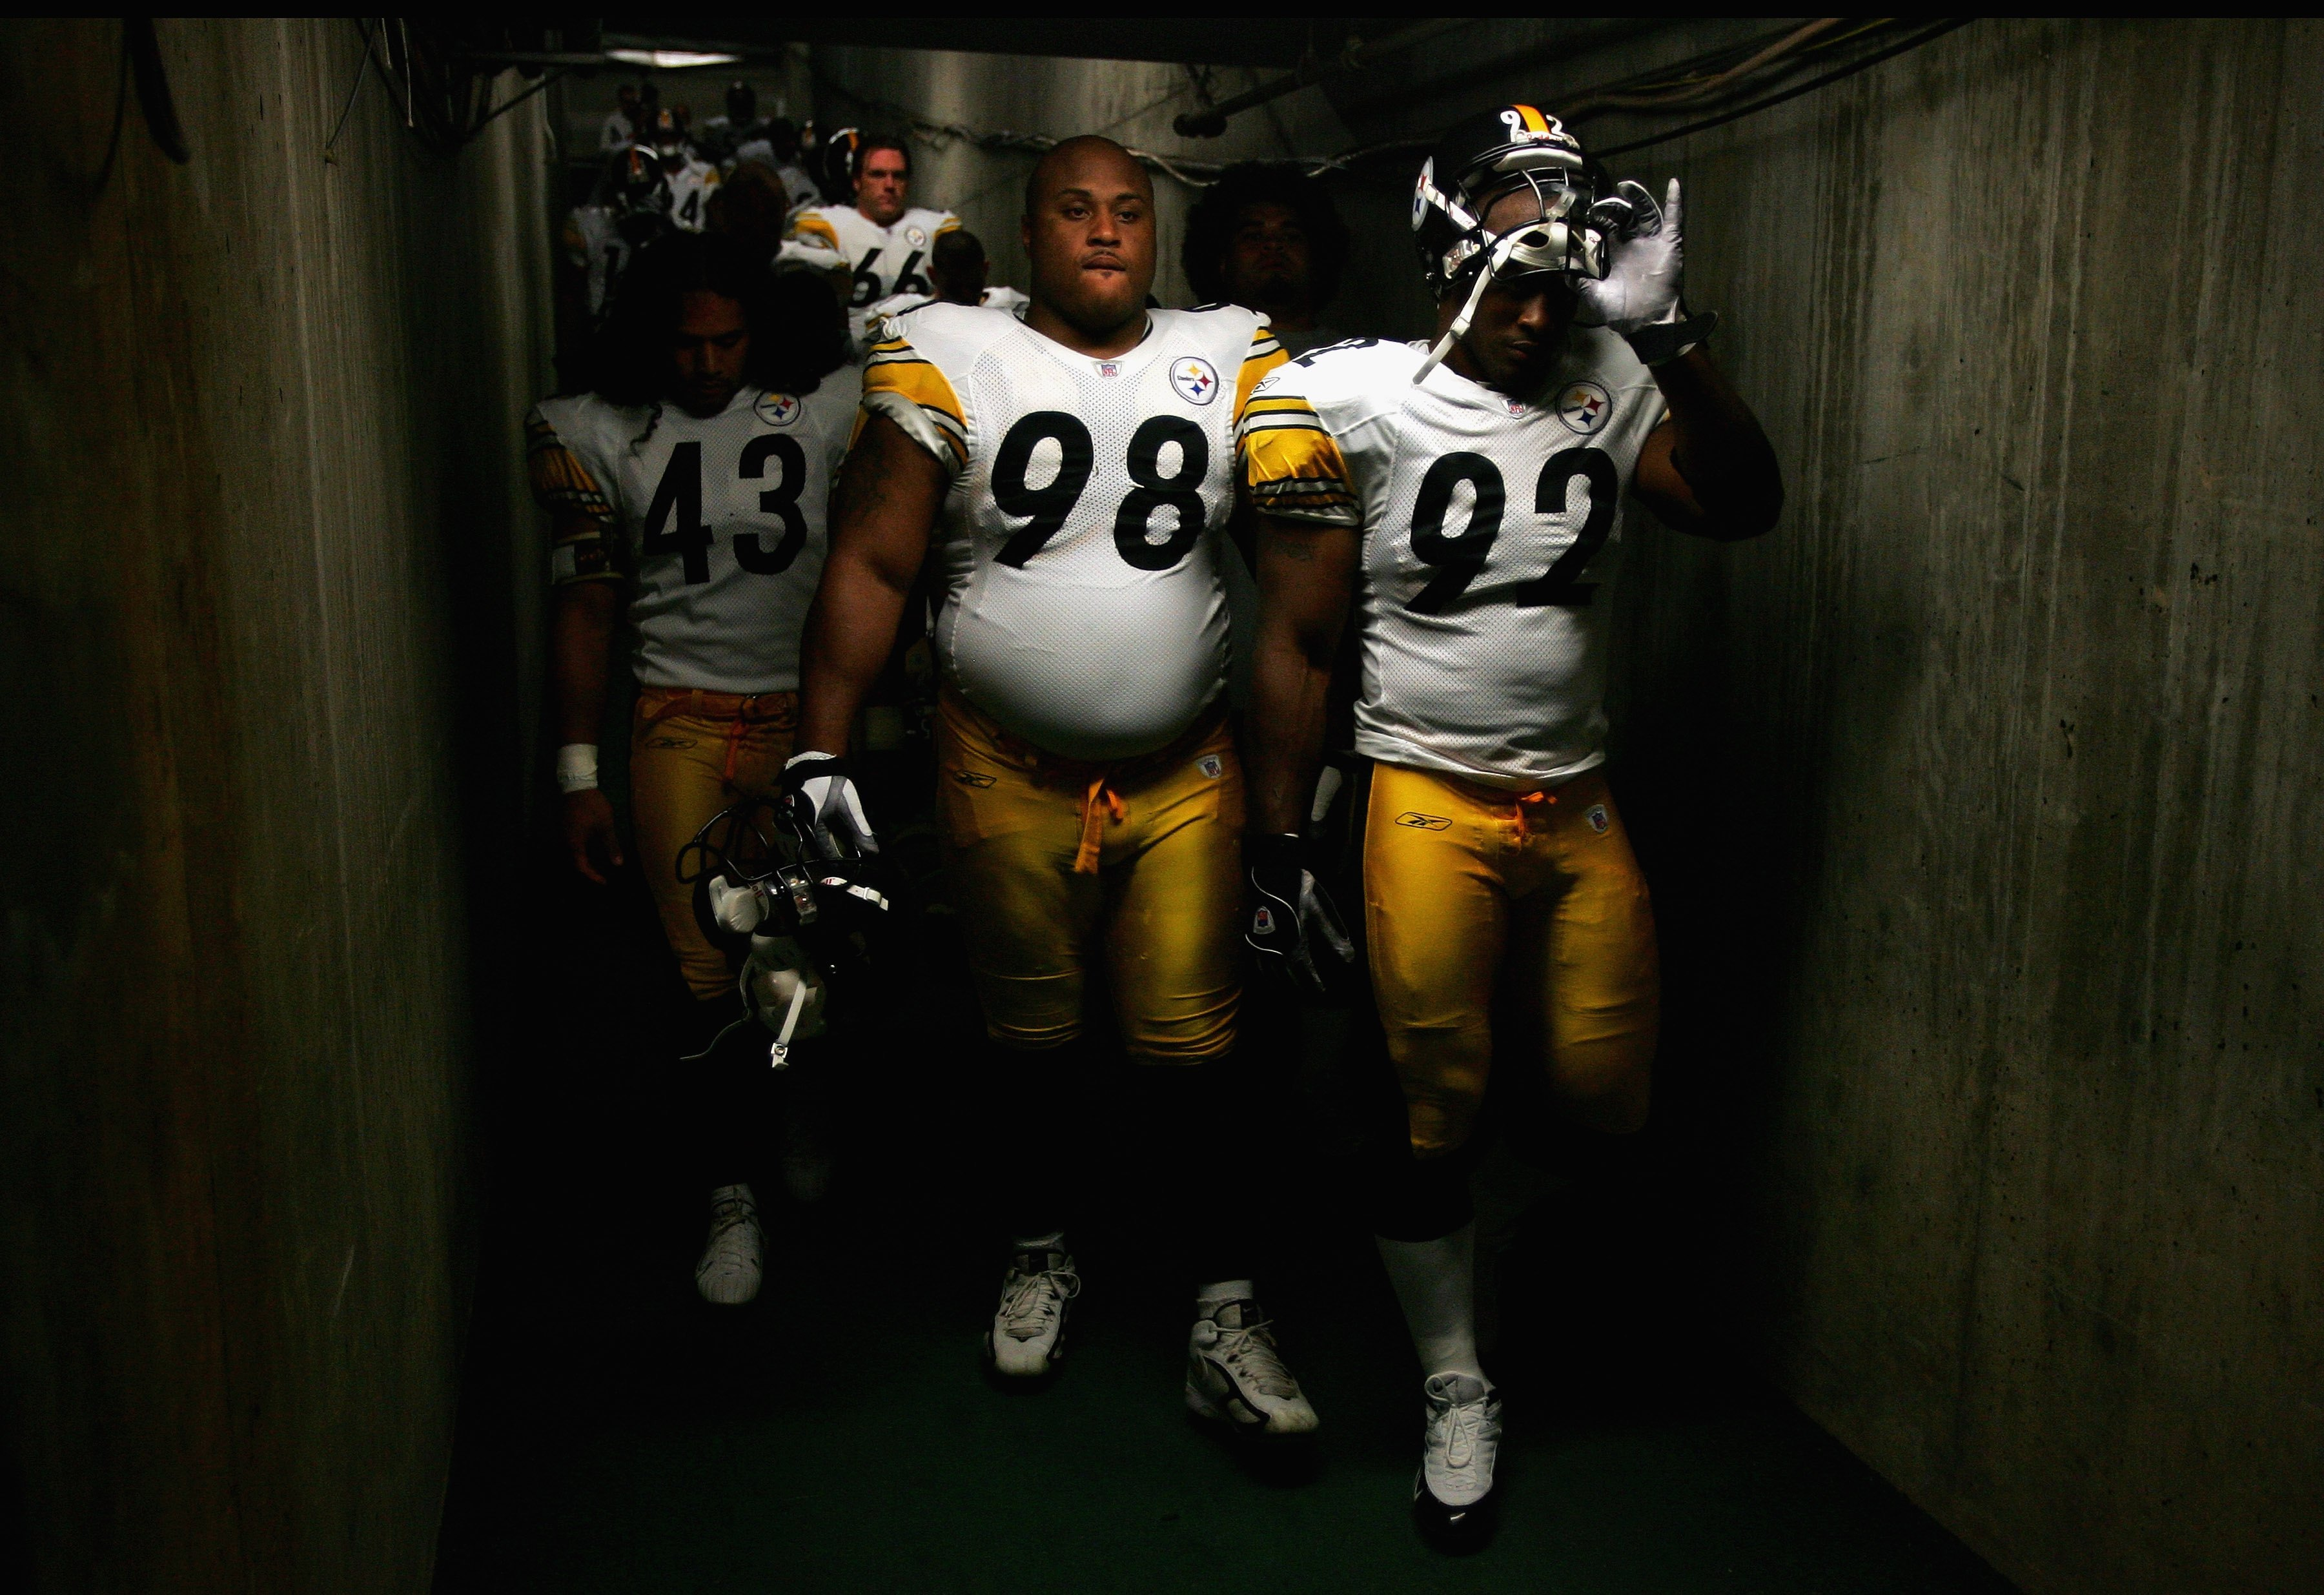 SAN DIEGO - OCTOBER 08:  Troy Polamalu #43, Casey Hampton #98, and James Harrison #92 of the Pittsburgh Steelers enter the game against the San Diego Chargers during the 1st half of their NFL game on October 8, 2006 at Qualcomm Stadium in San Diego, Calif